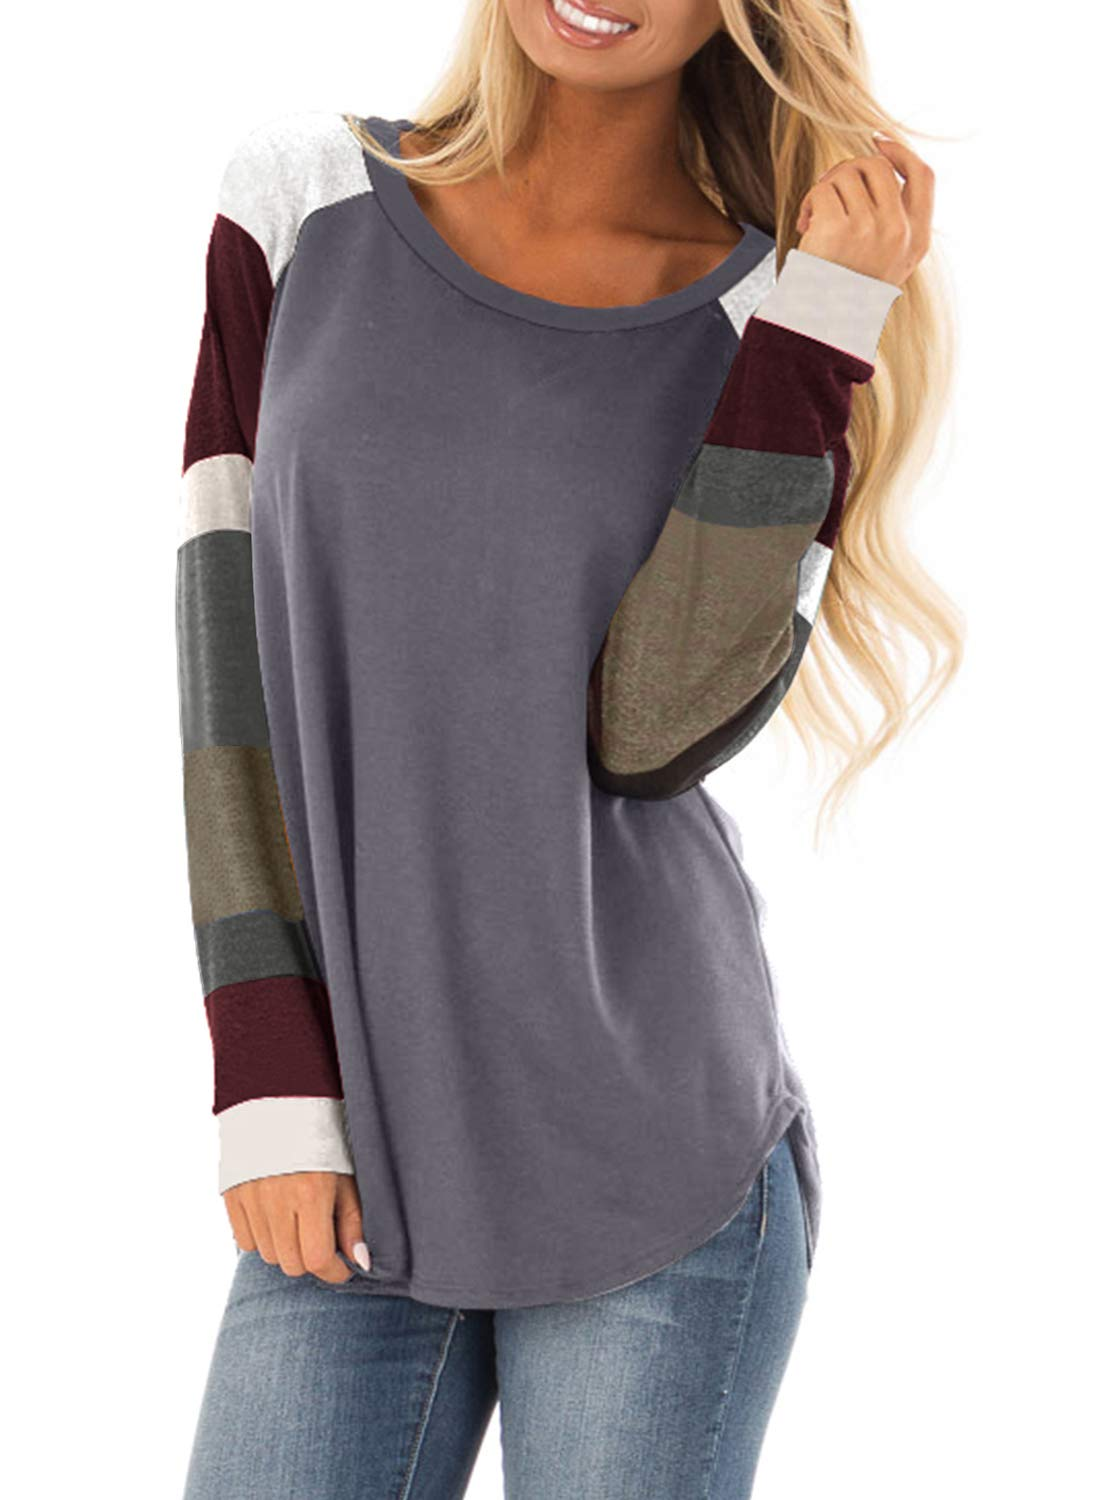 Asvivid Women Long Sleeve Color Block Loose T Shirt Casual Oversized Sweatshirt Tee Blouse Top Size UK6-22 WHH251469-UK